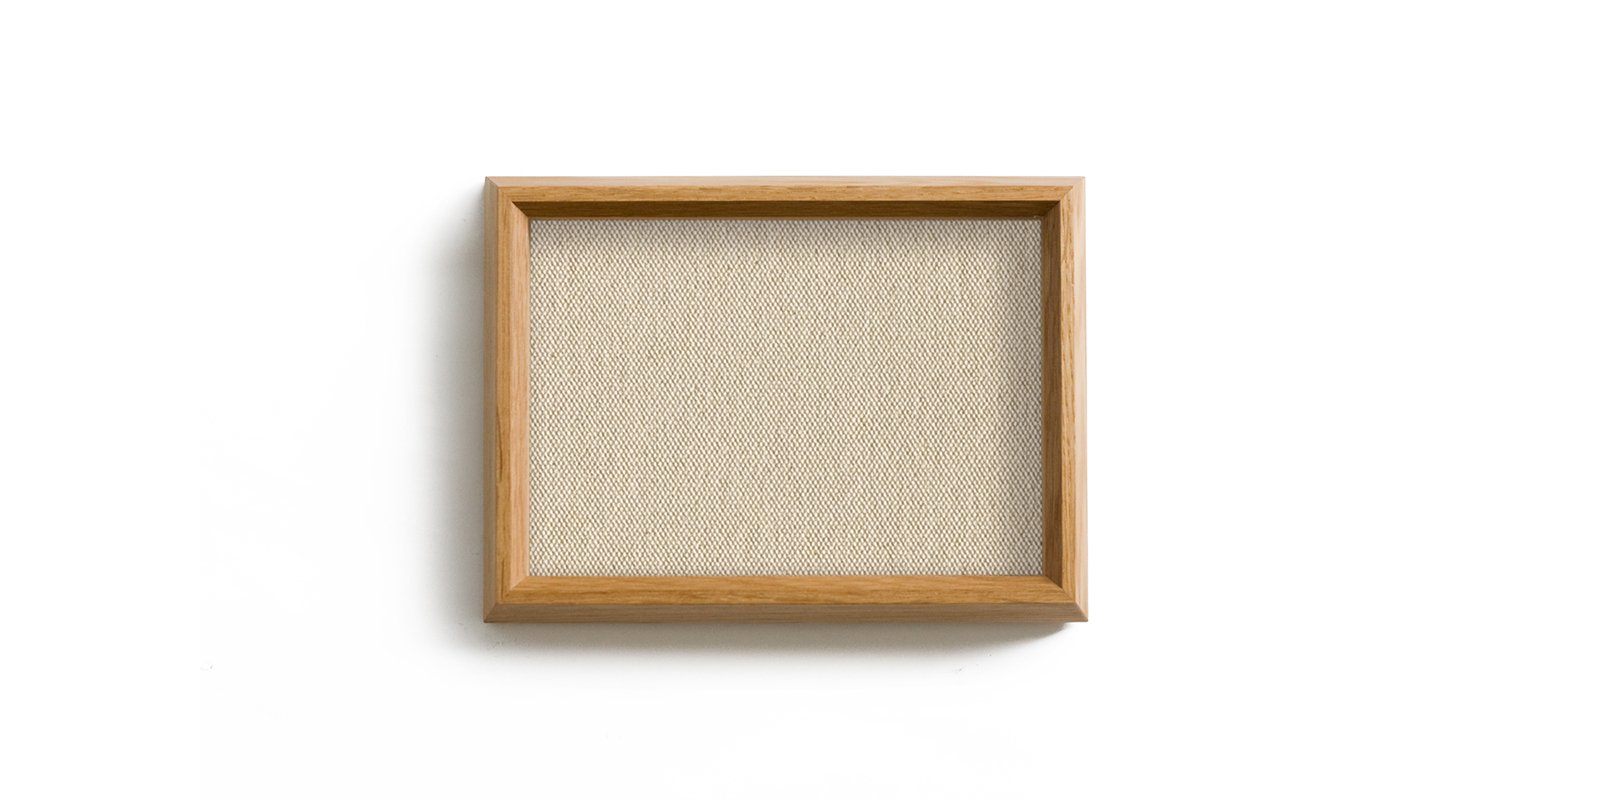 d art frame B6・FABRIC